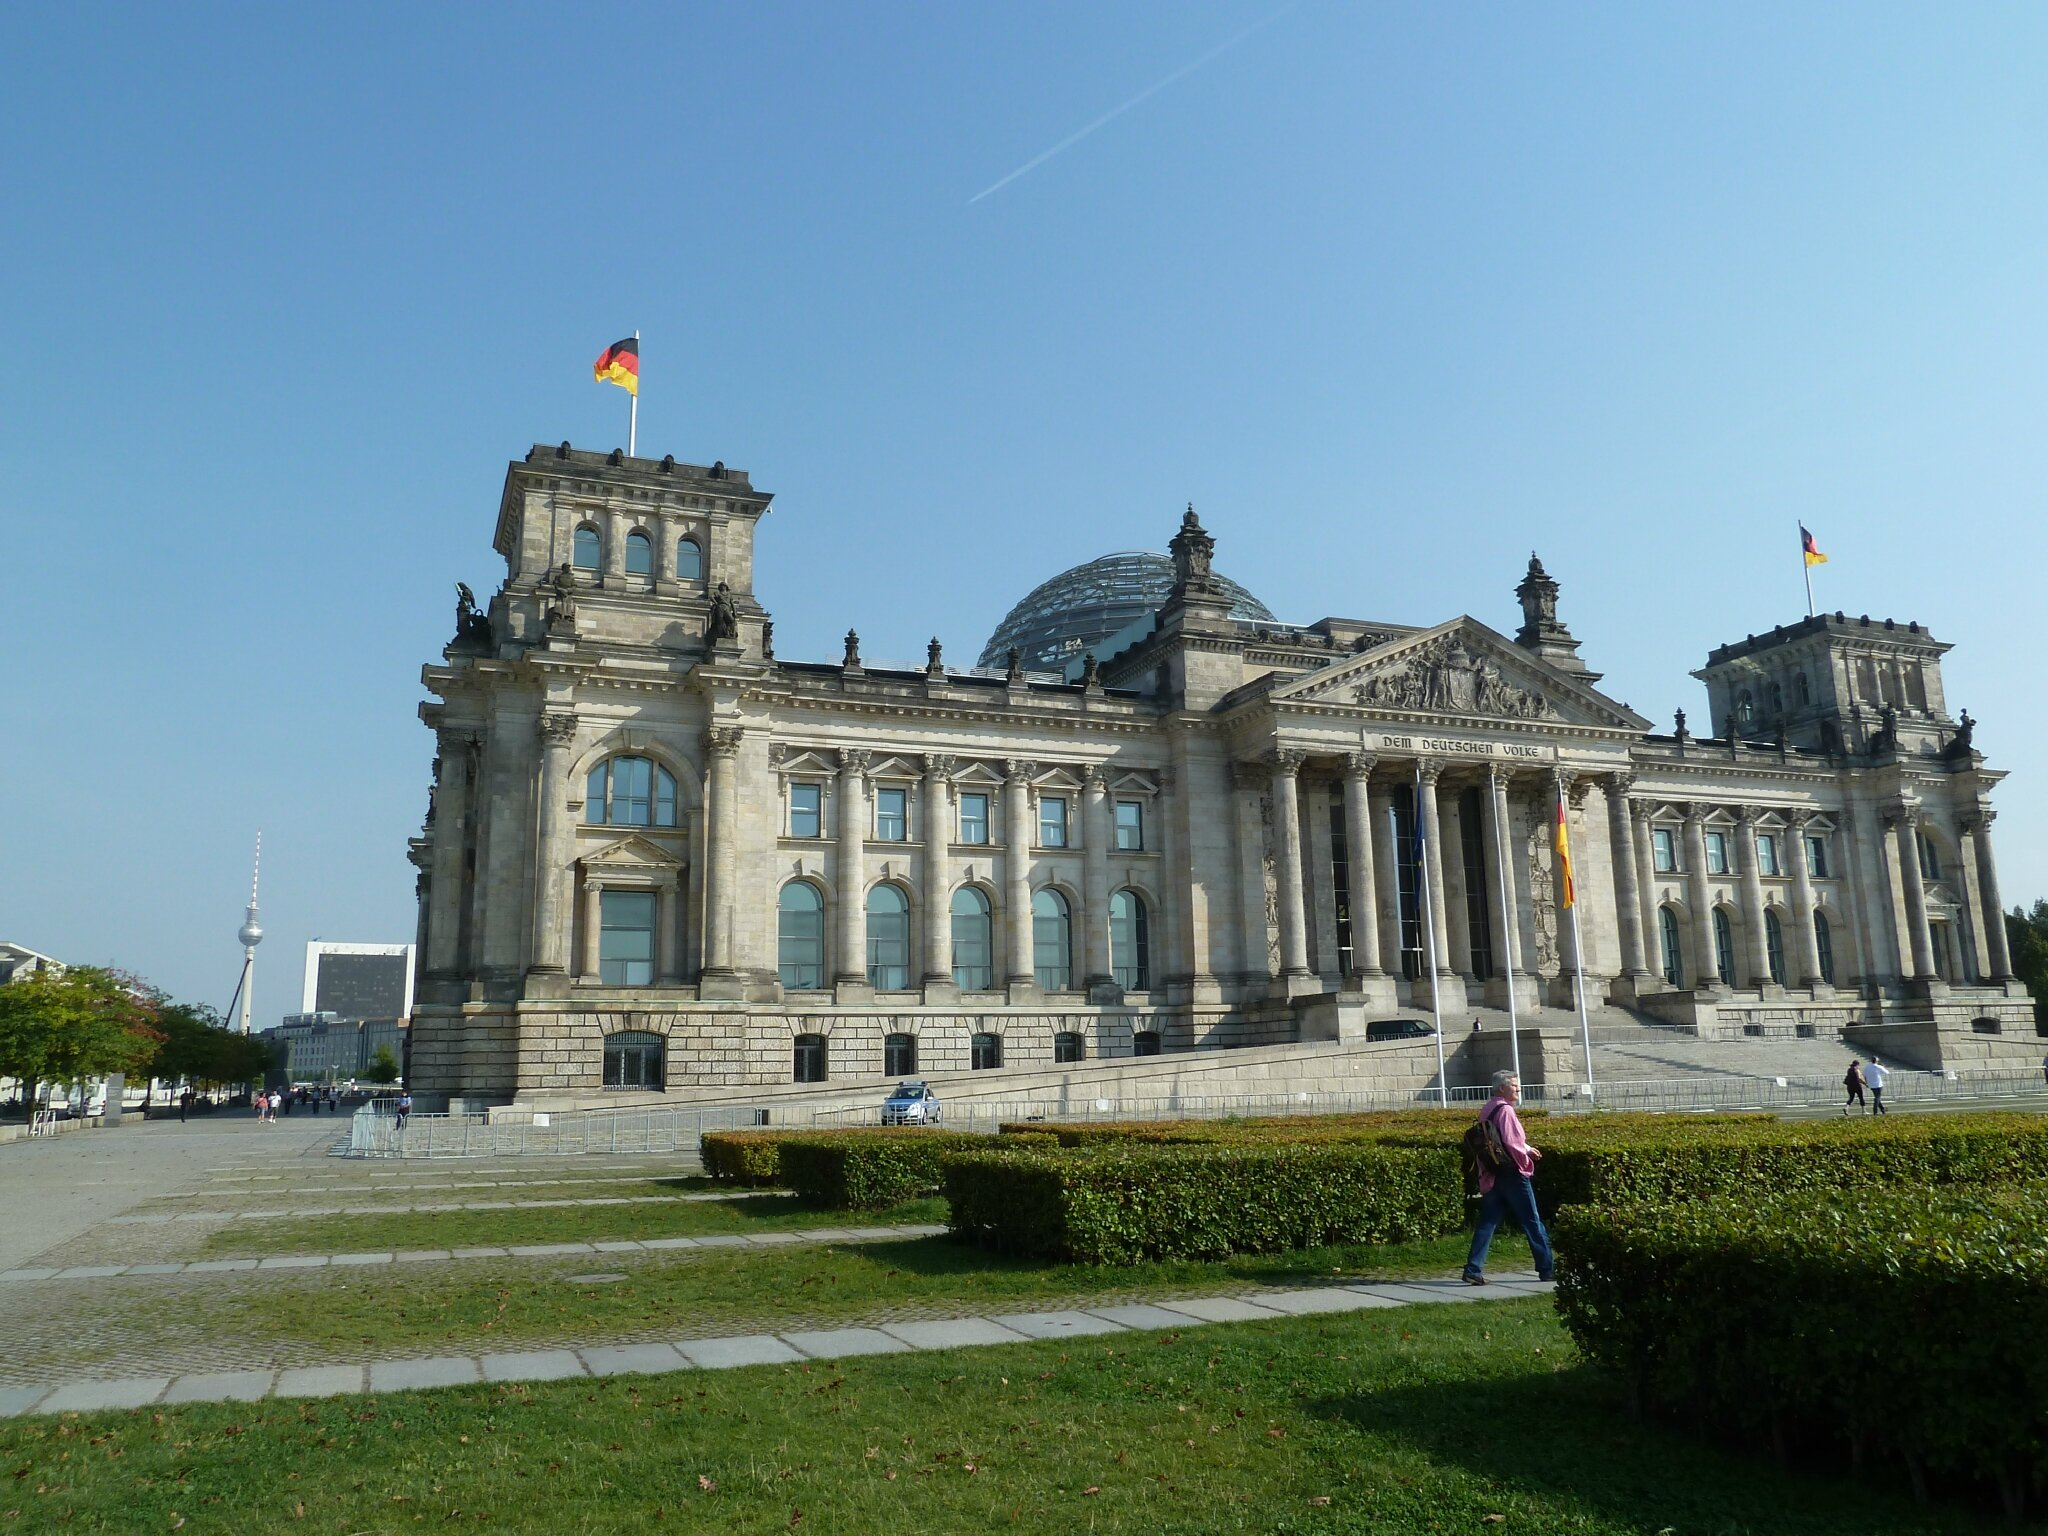 169 Le Reichstag